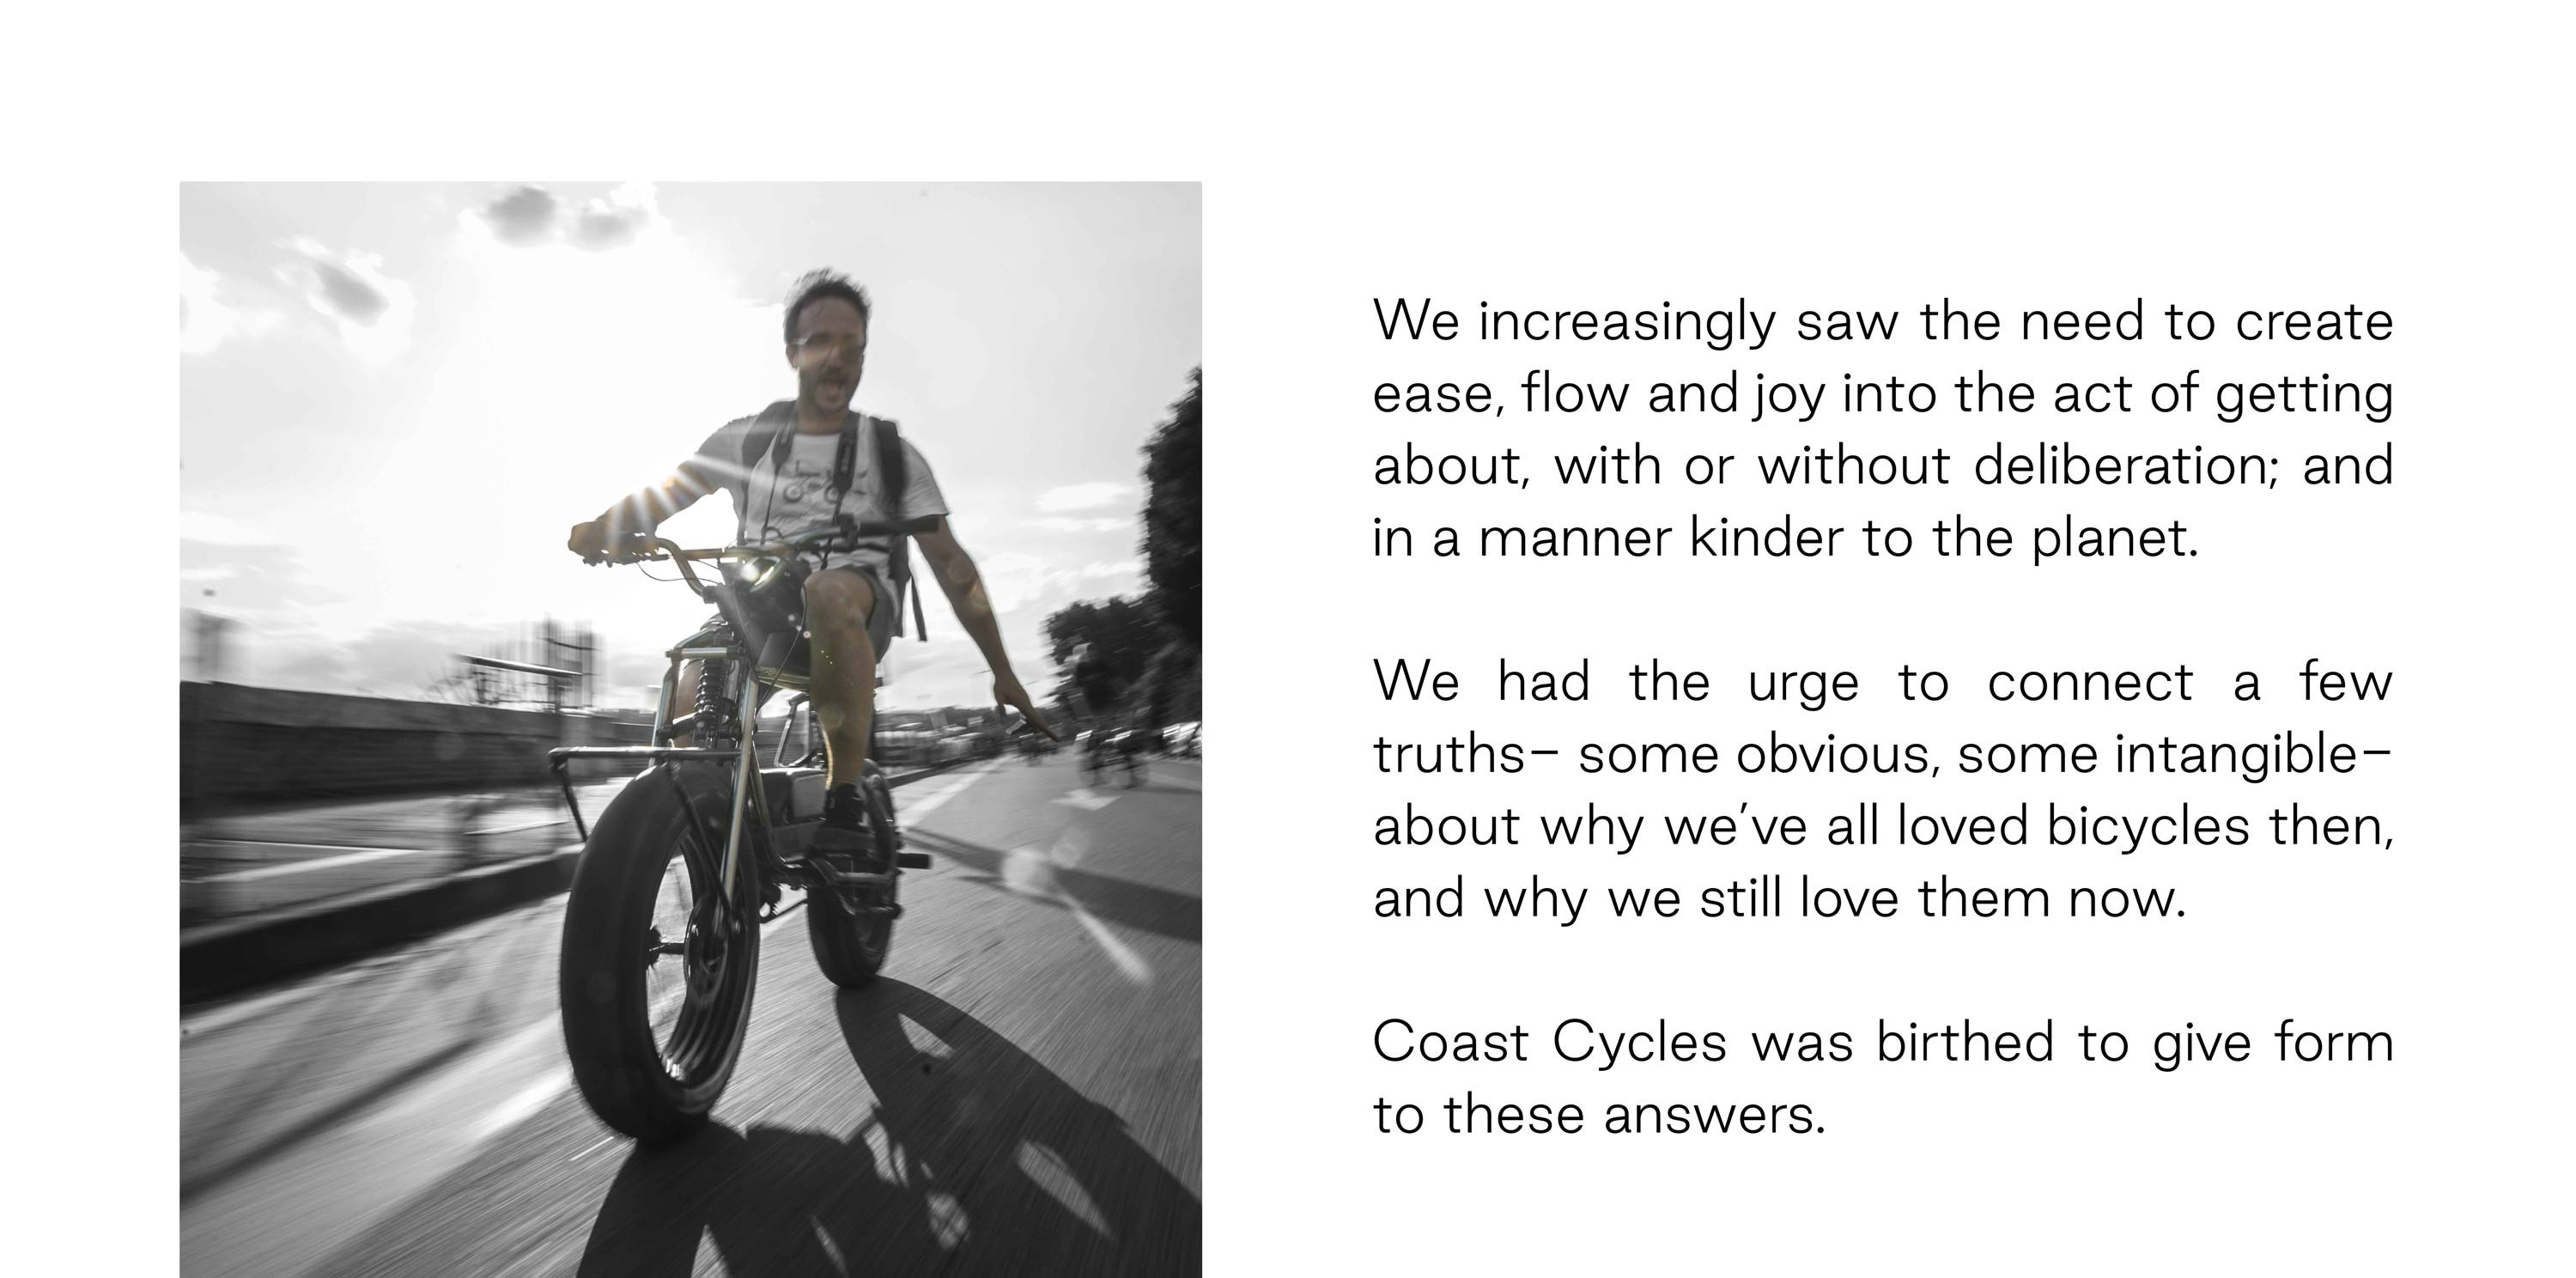 We increasingly saw the need to create more ease, flow and joy into the act of getting about, with or without deliberation; and in a manner kinder to the planet.   We had the urge to connect a few truths- some obvious, some intangible- about why we've all loved bicycles then, and why we still love them now.   Coast Cycles was birthed to give form to these answers.